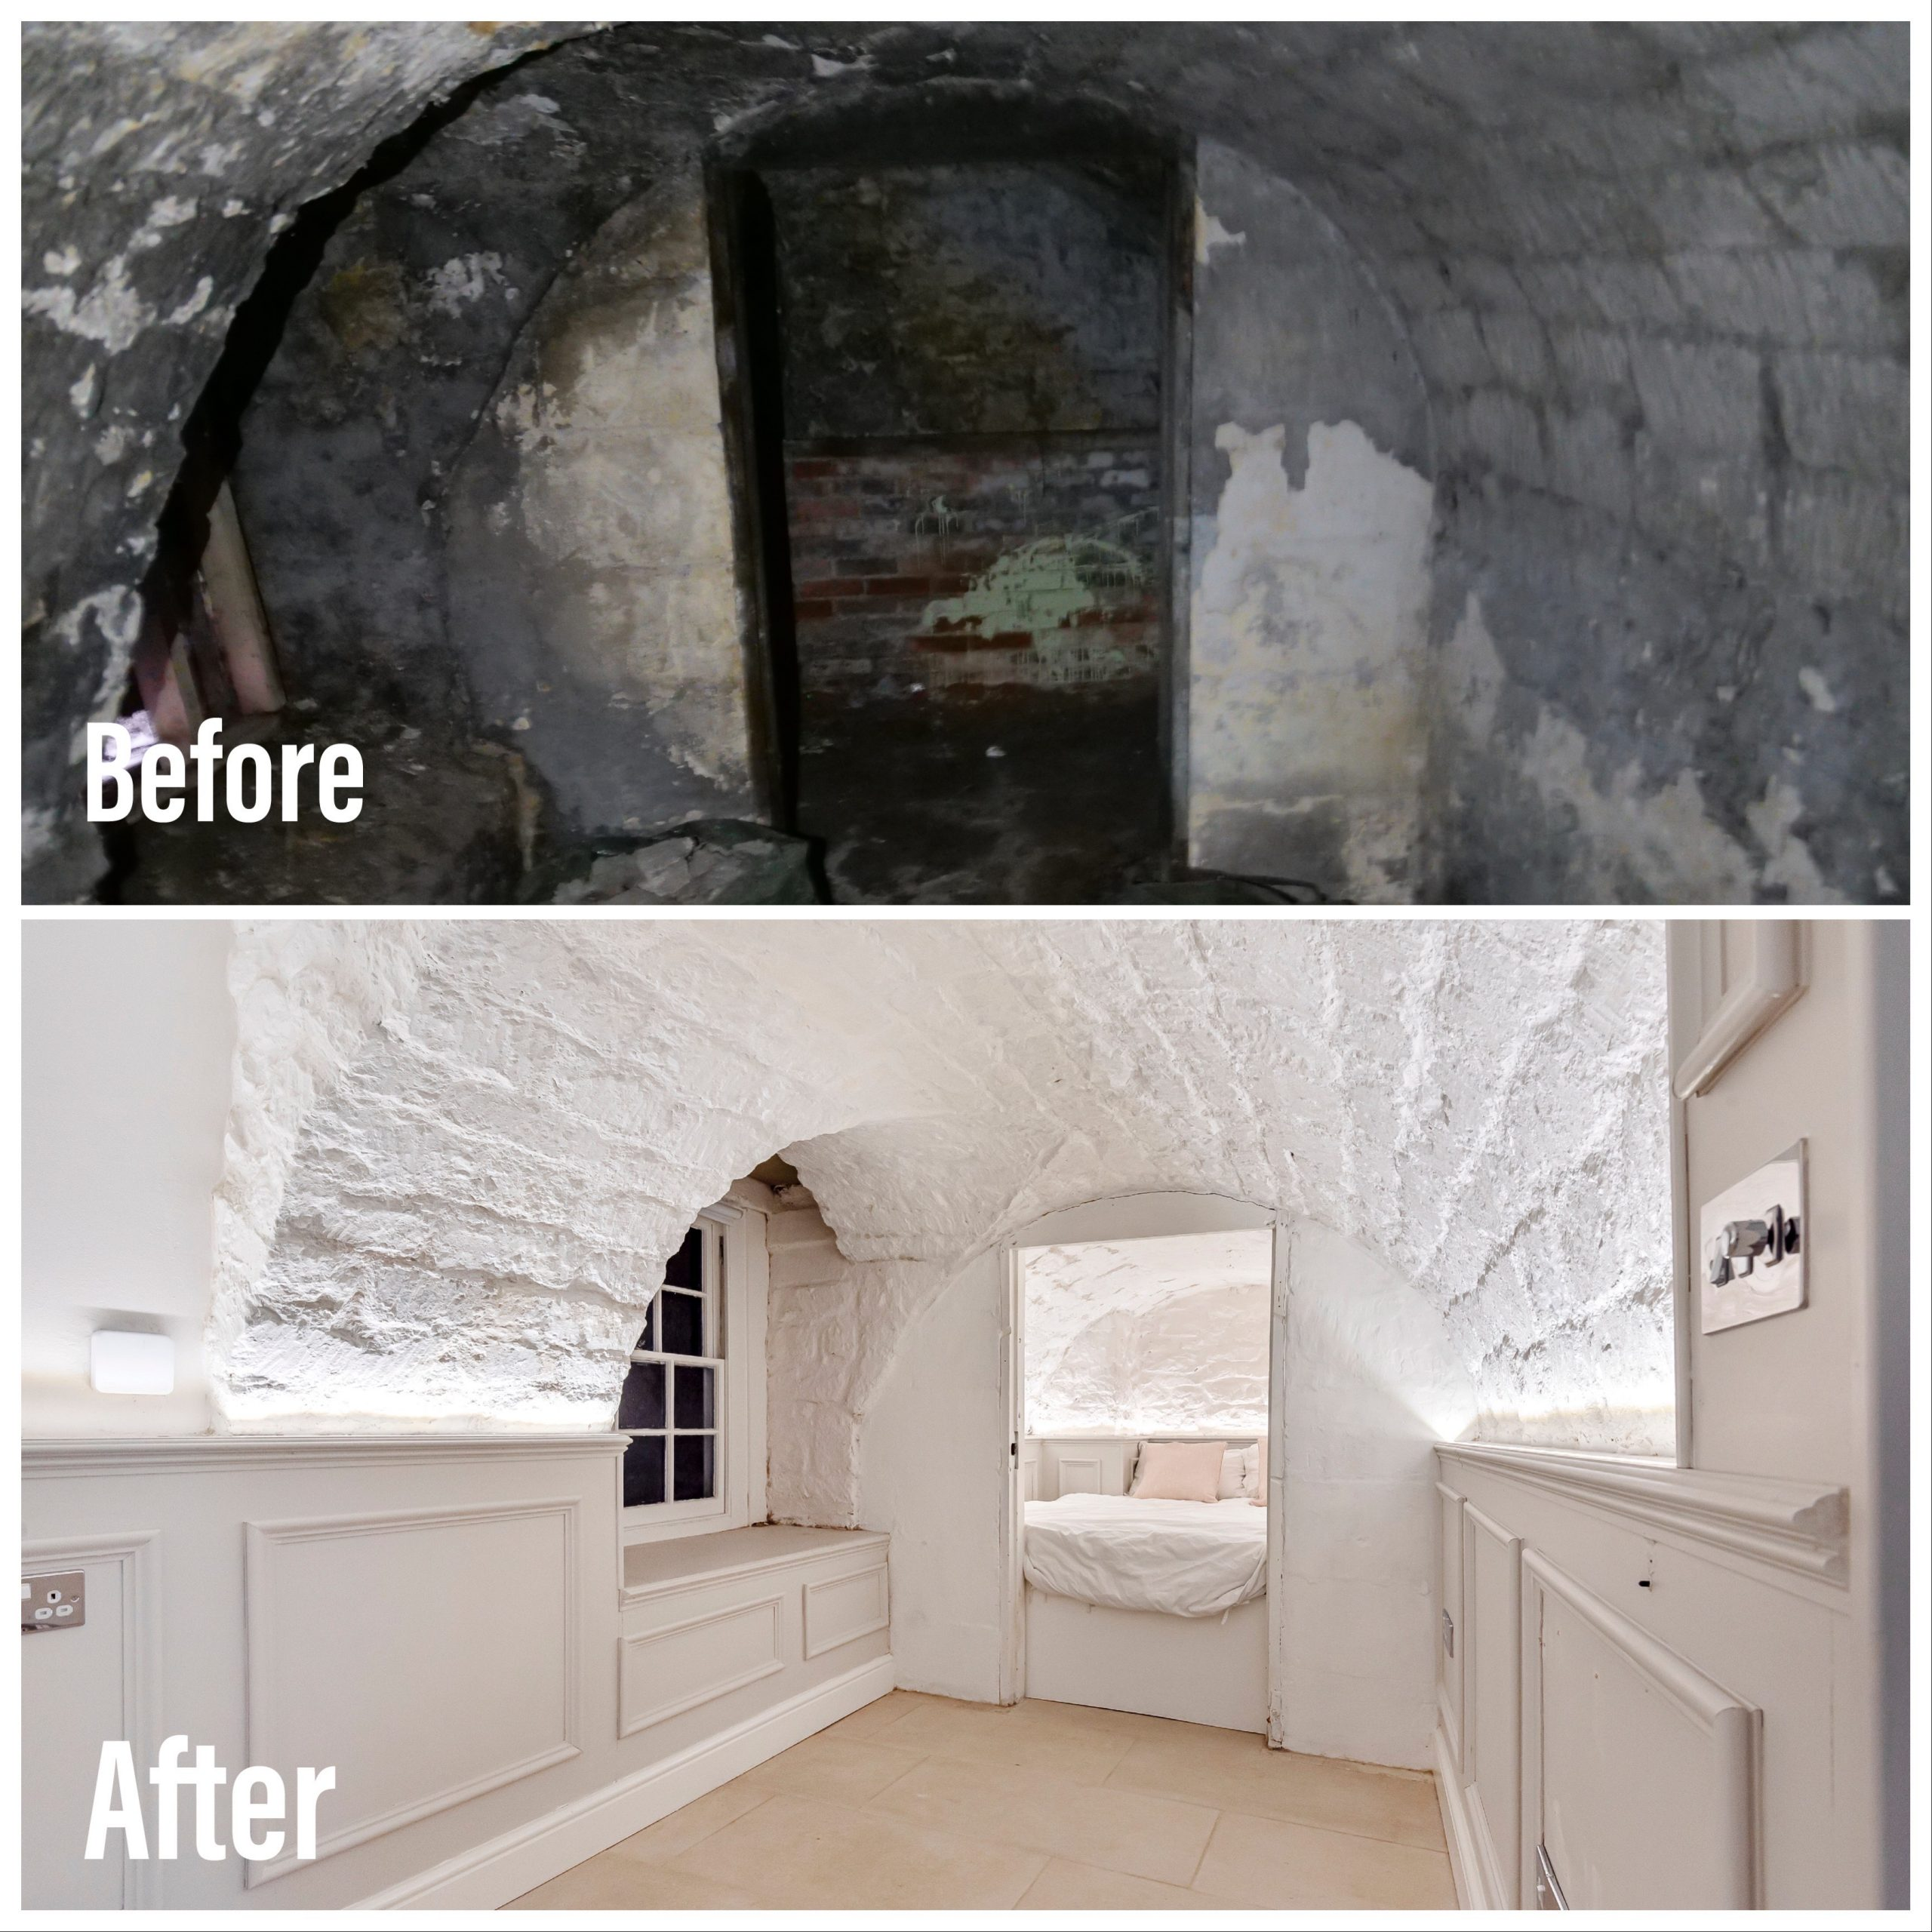 The damp vaults in the historic property were painted with breathable Claypaint